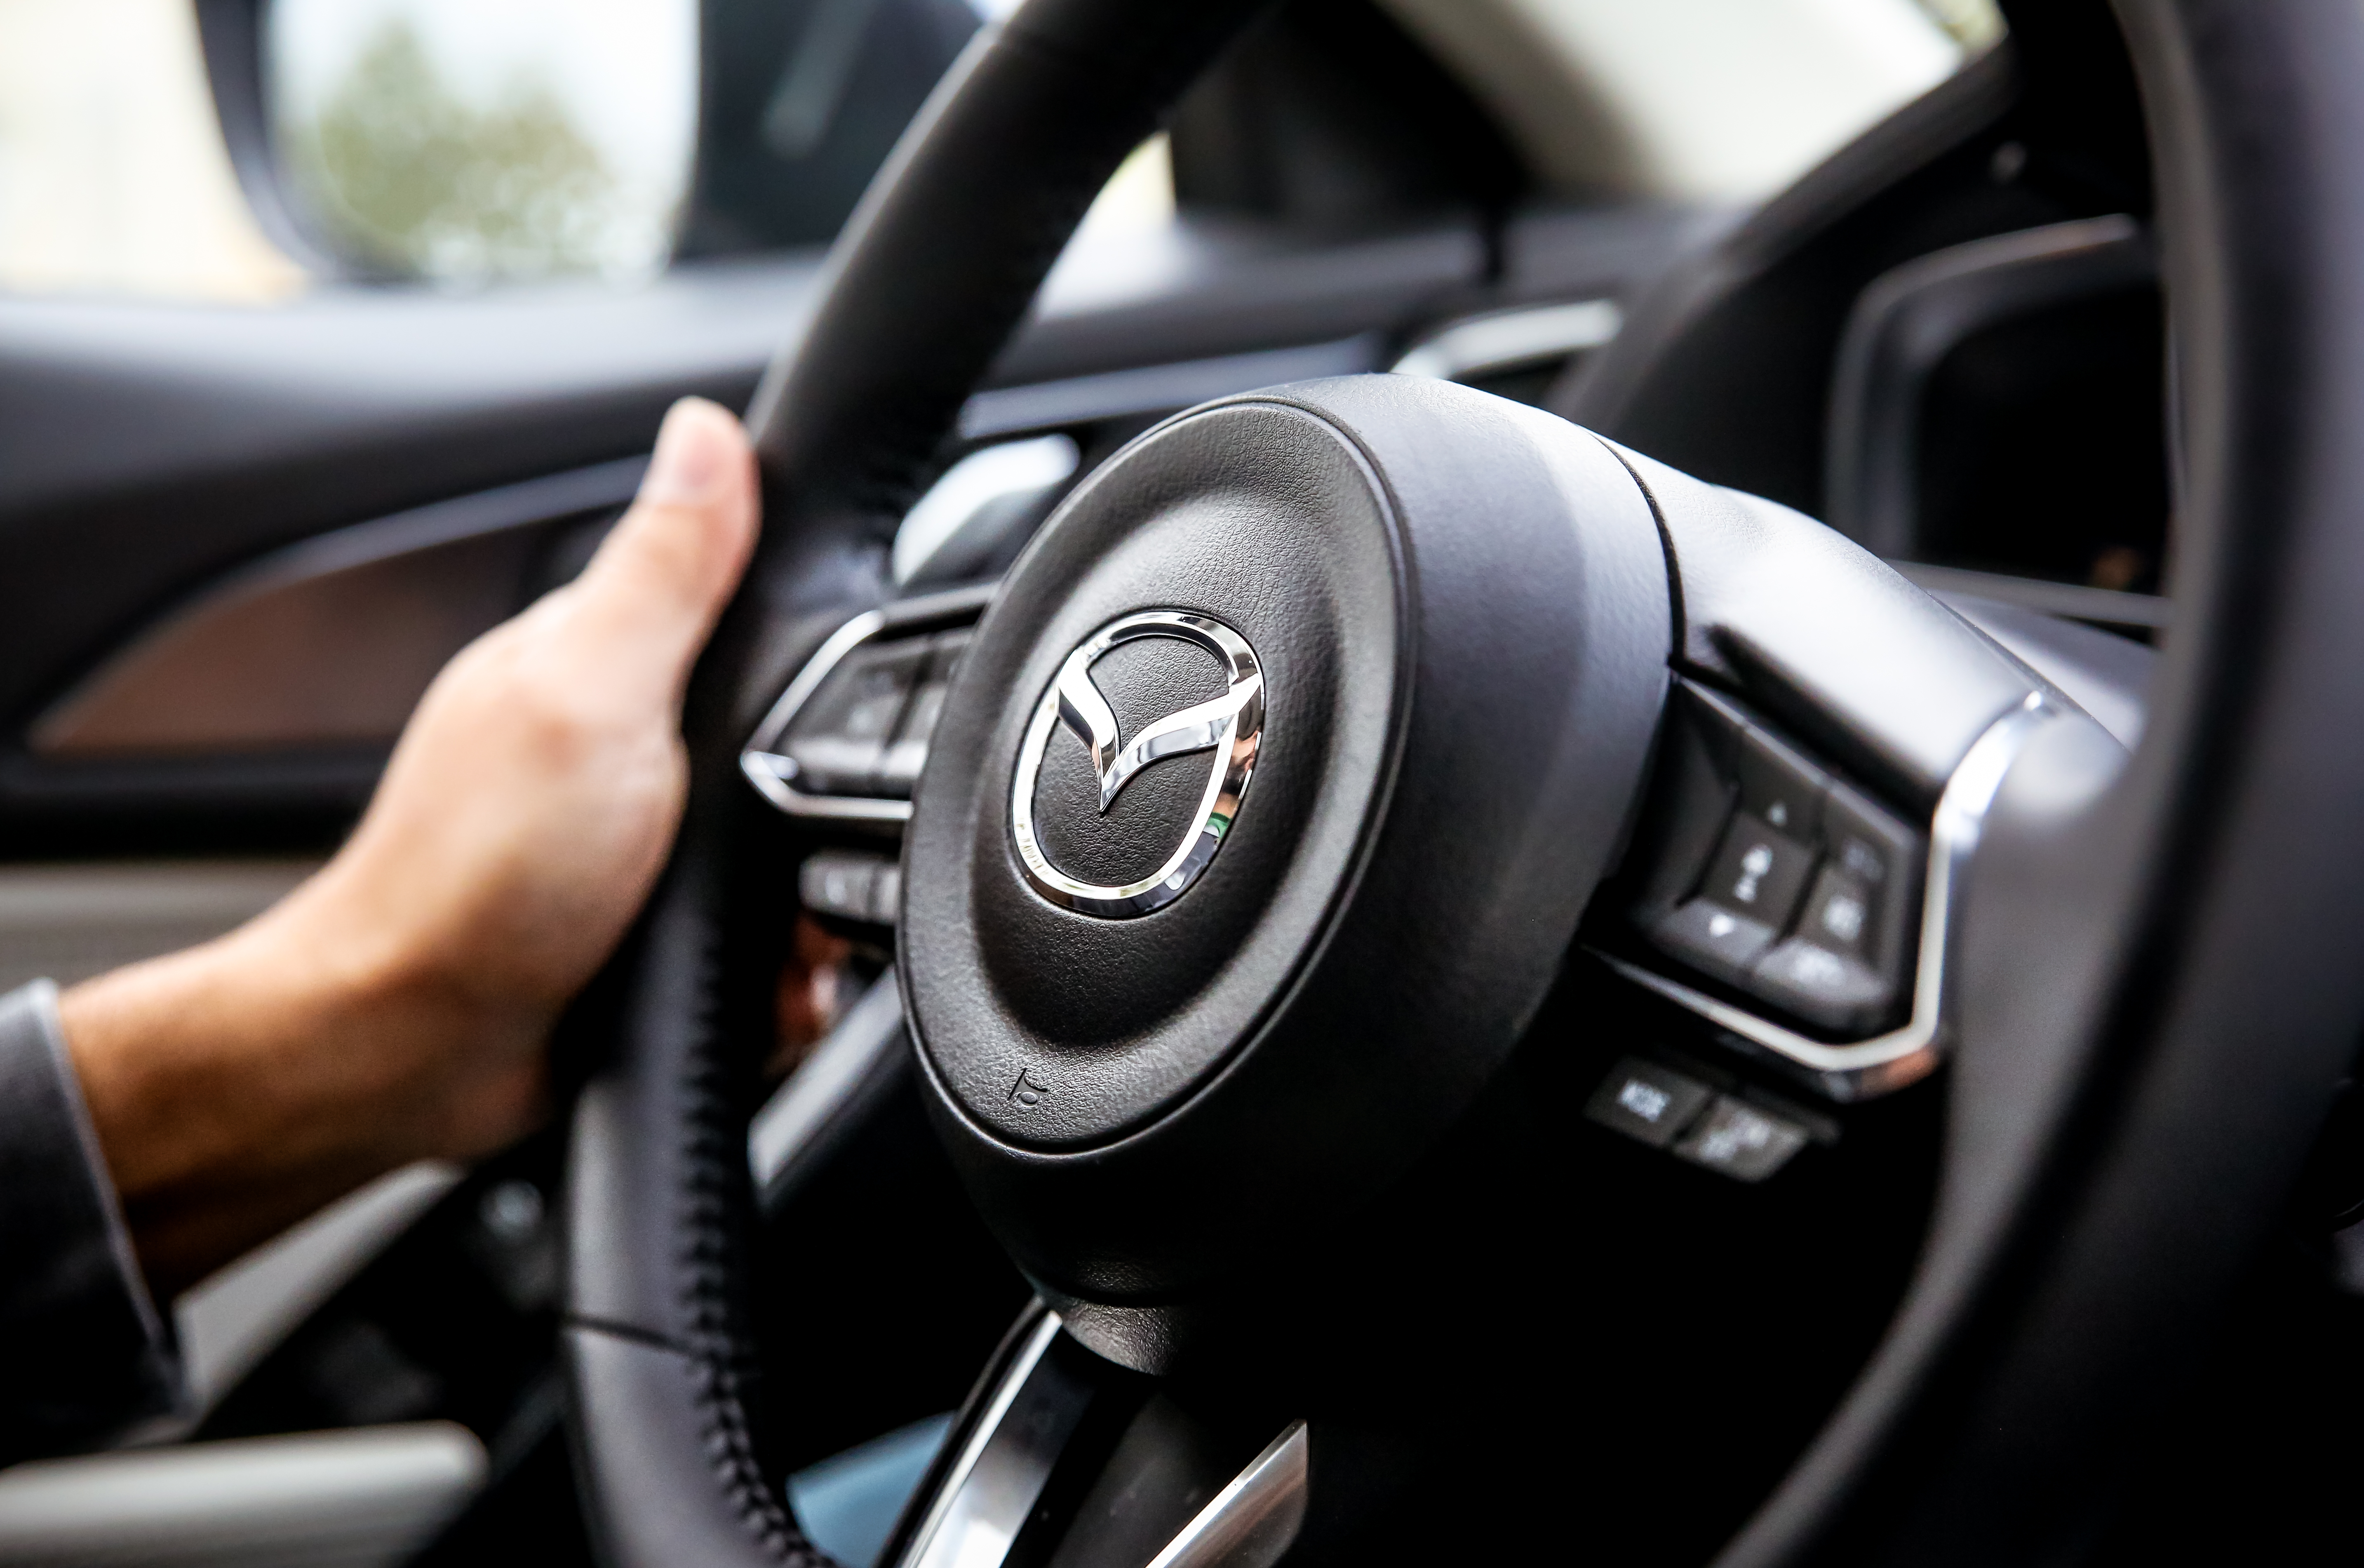 As I mentioned earlier this was my first time driving a manual vehicle.  While it was much different than driving an automatic, I felt like I had so  much ...